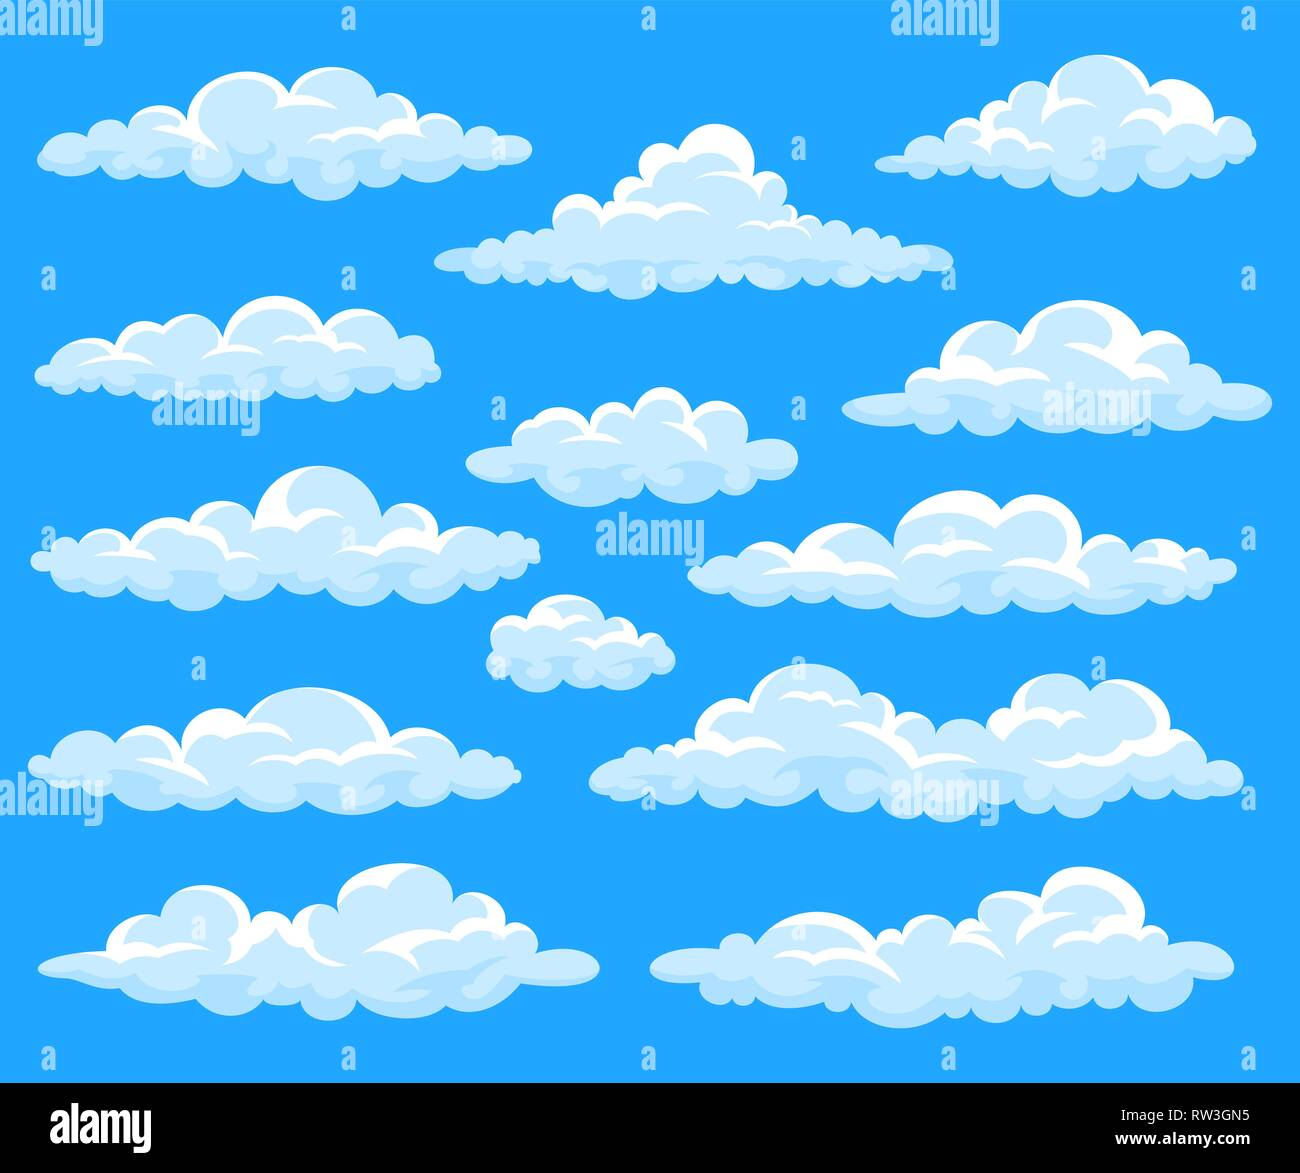 Set Of Cartoon Clouds Stock Vector Image Art Alamy Pikbest has 13272 cartoon cloud design images templates for free. https www alamy com set of cartoon clouds image239180177 html